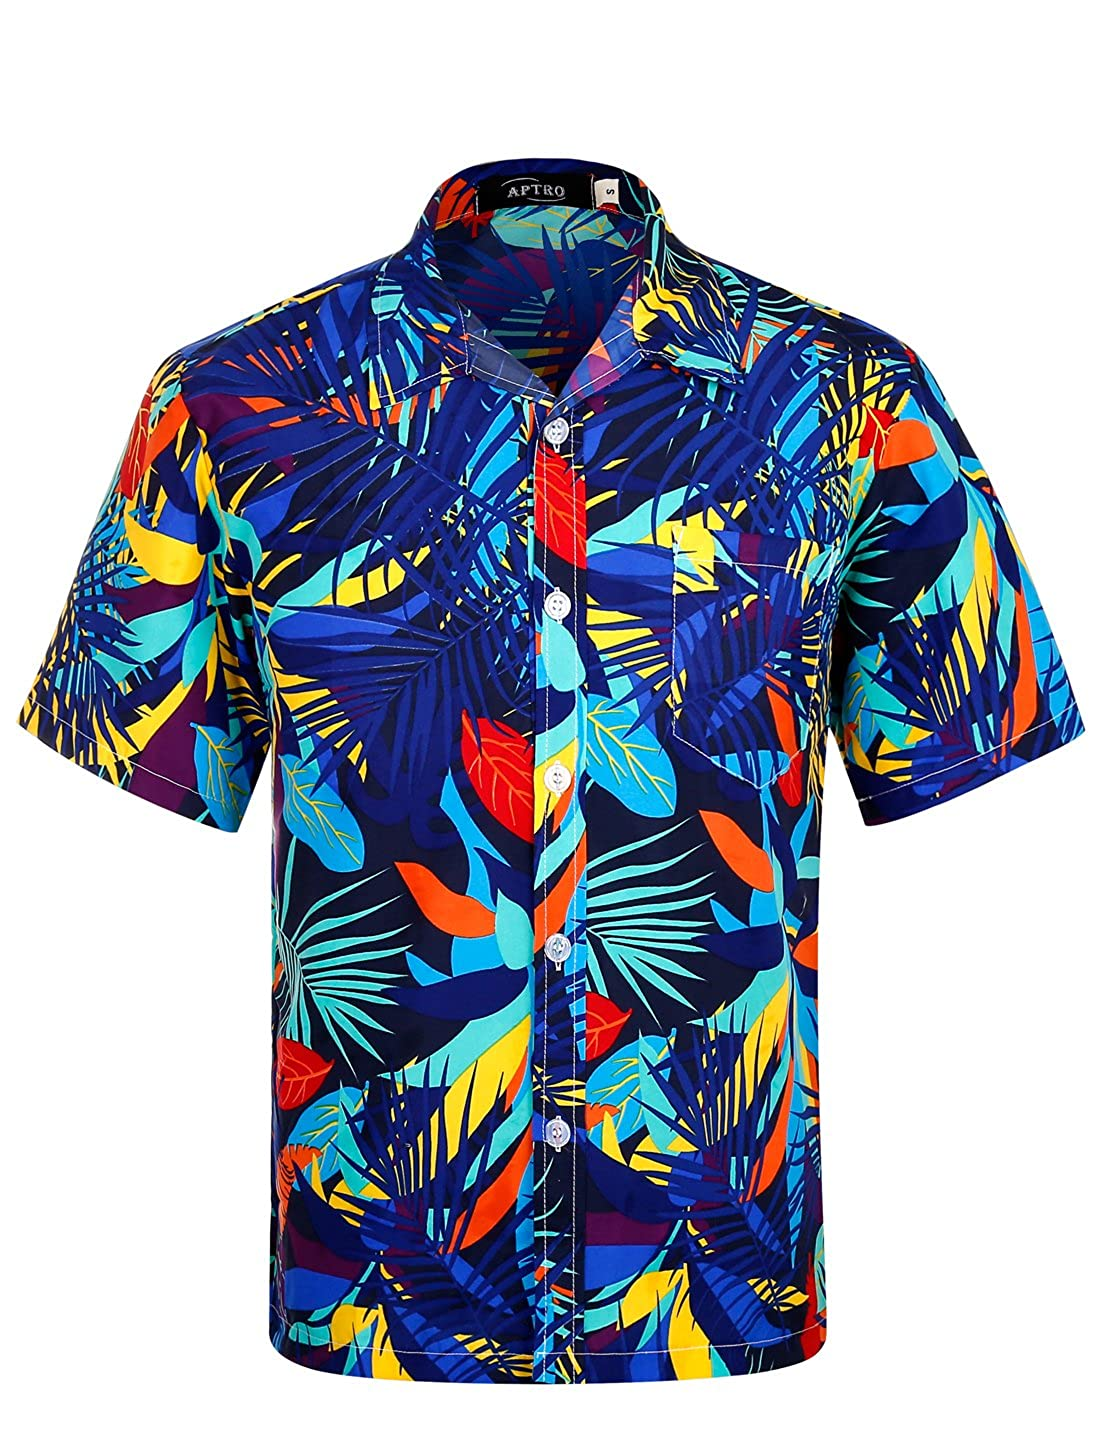 89ae69f7 FABRIC-- professional Peach skin fabric for the Hawaiian shirts, 100%  quality polyester, super soft smooth and cool feeling, making your wearing  experience ...